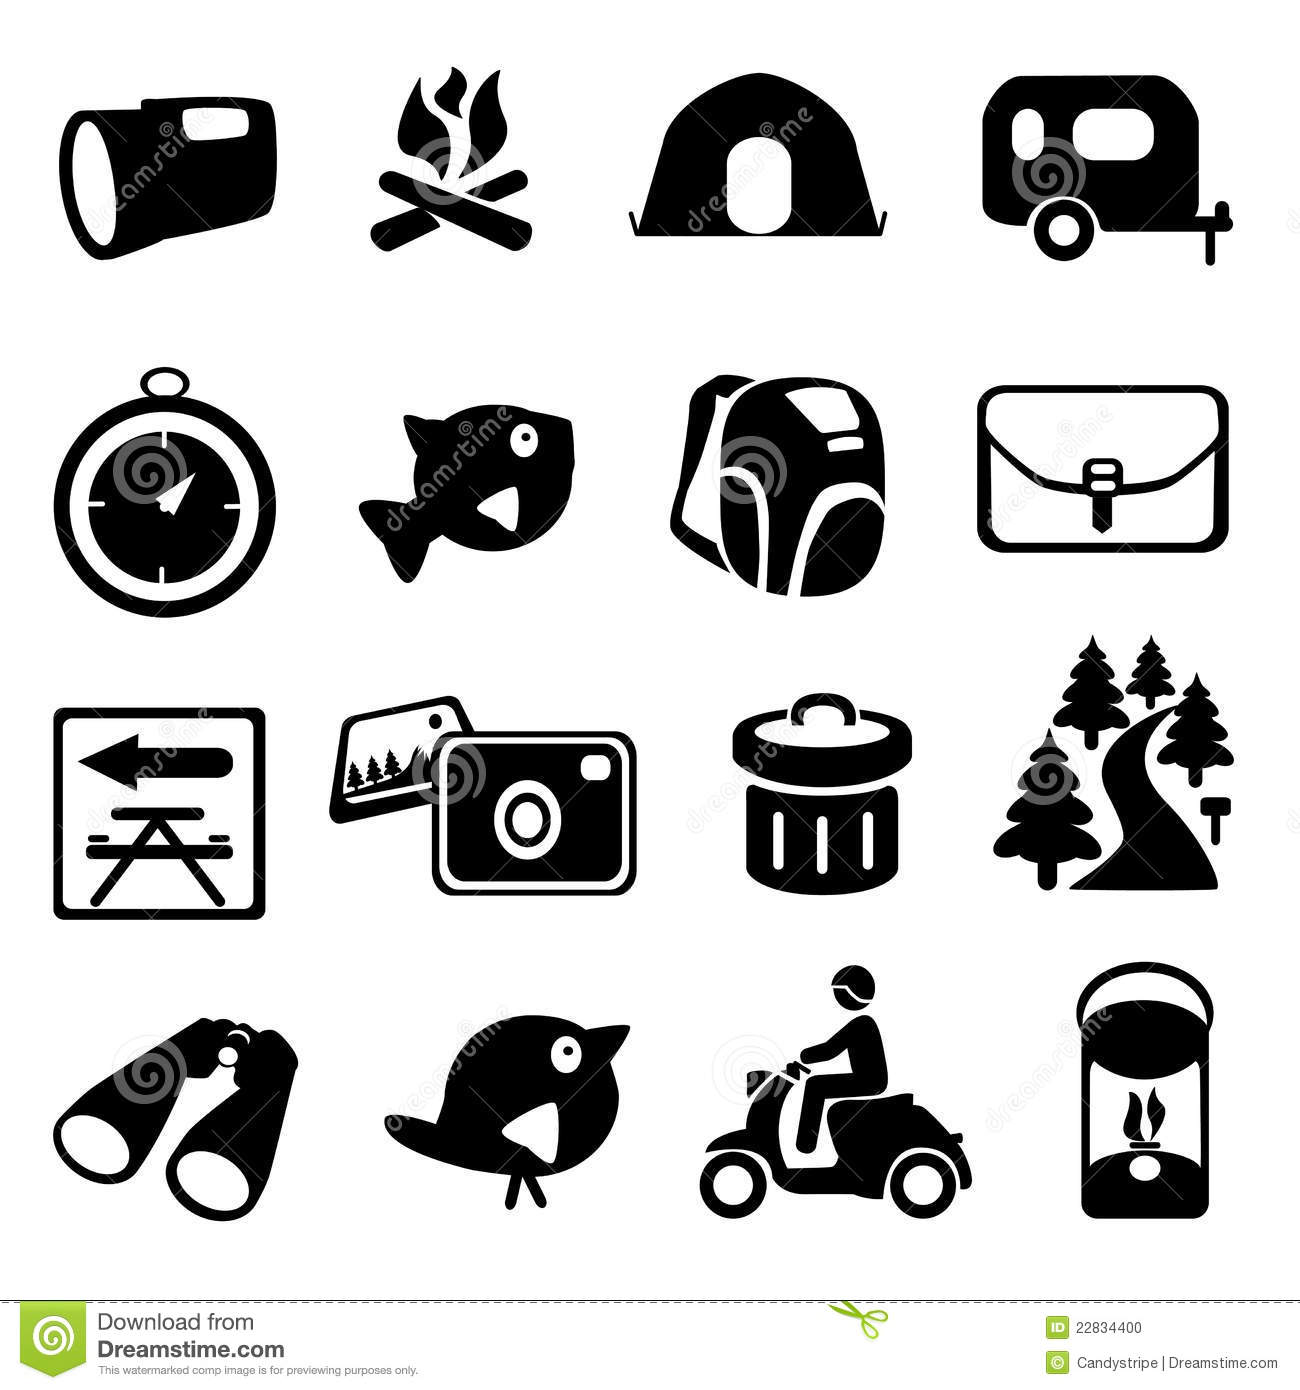 256071928786986493 besides Skateboard 20clipart 20sketch likewise Stock Photo C ing Hiking Icon Set Image22834400 likewise Playground slide additionally Laltalena 0. on playground equipment clip art